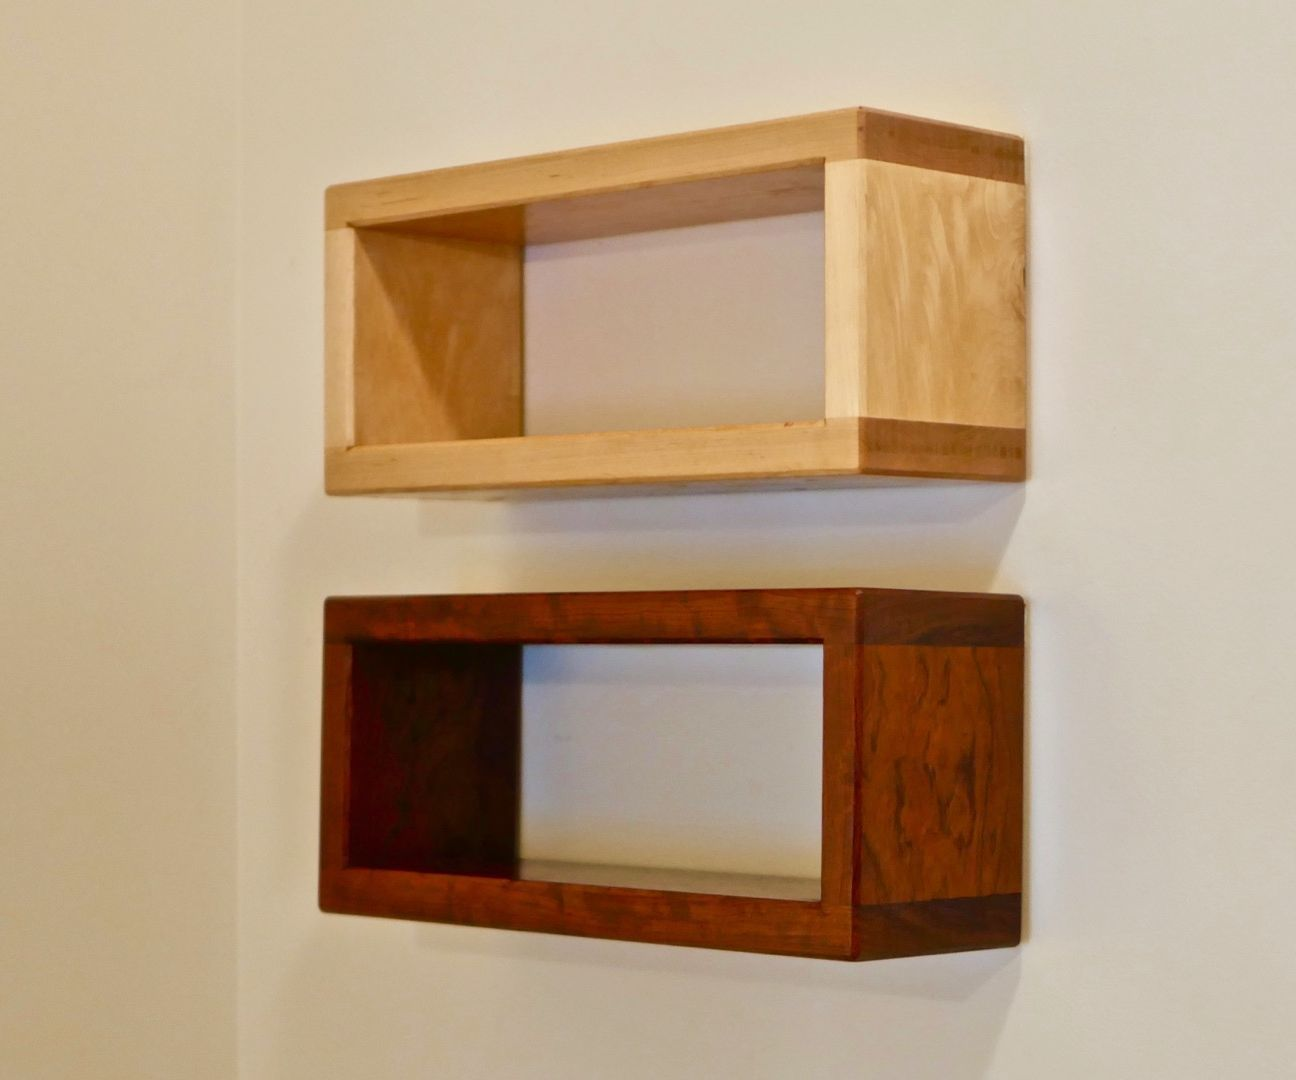 How To Build Diy Floating Shelf With Invisible Hardware 10